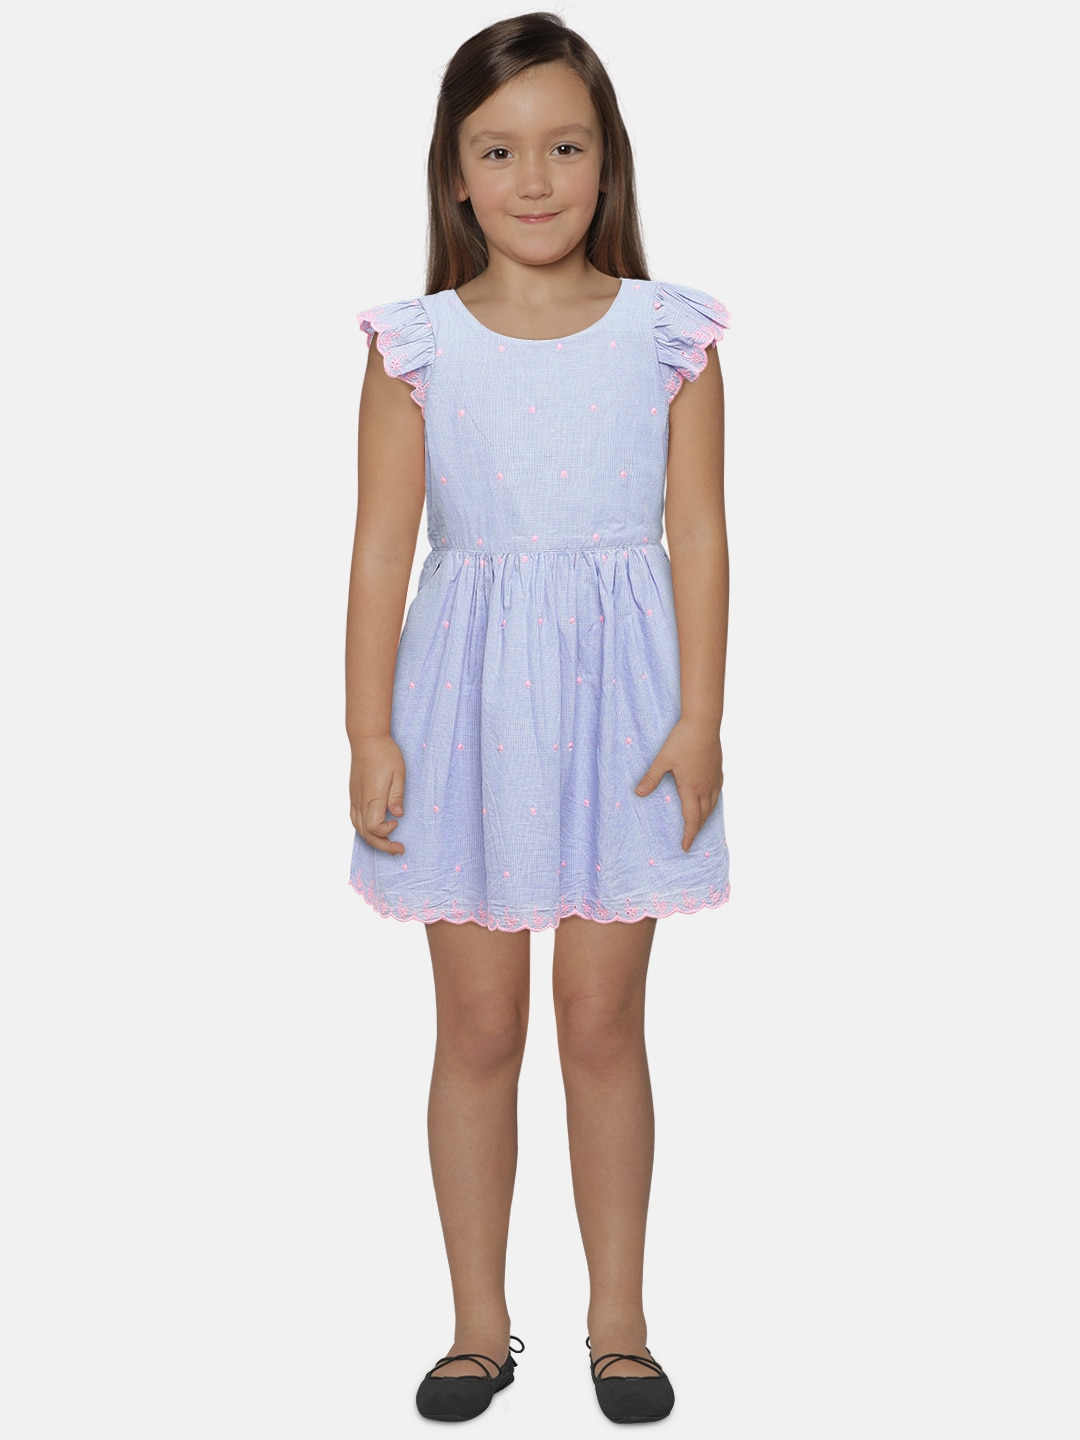 a5034ed4398 Girls Dresses - Buy Frocks   Gowns for Girls Online